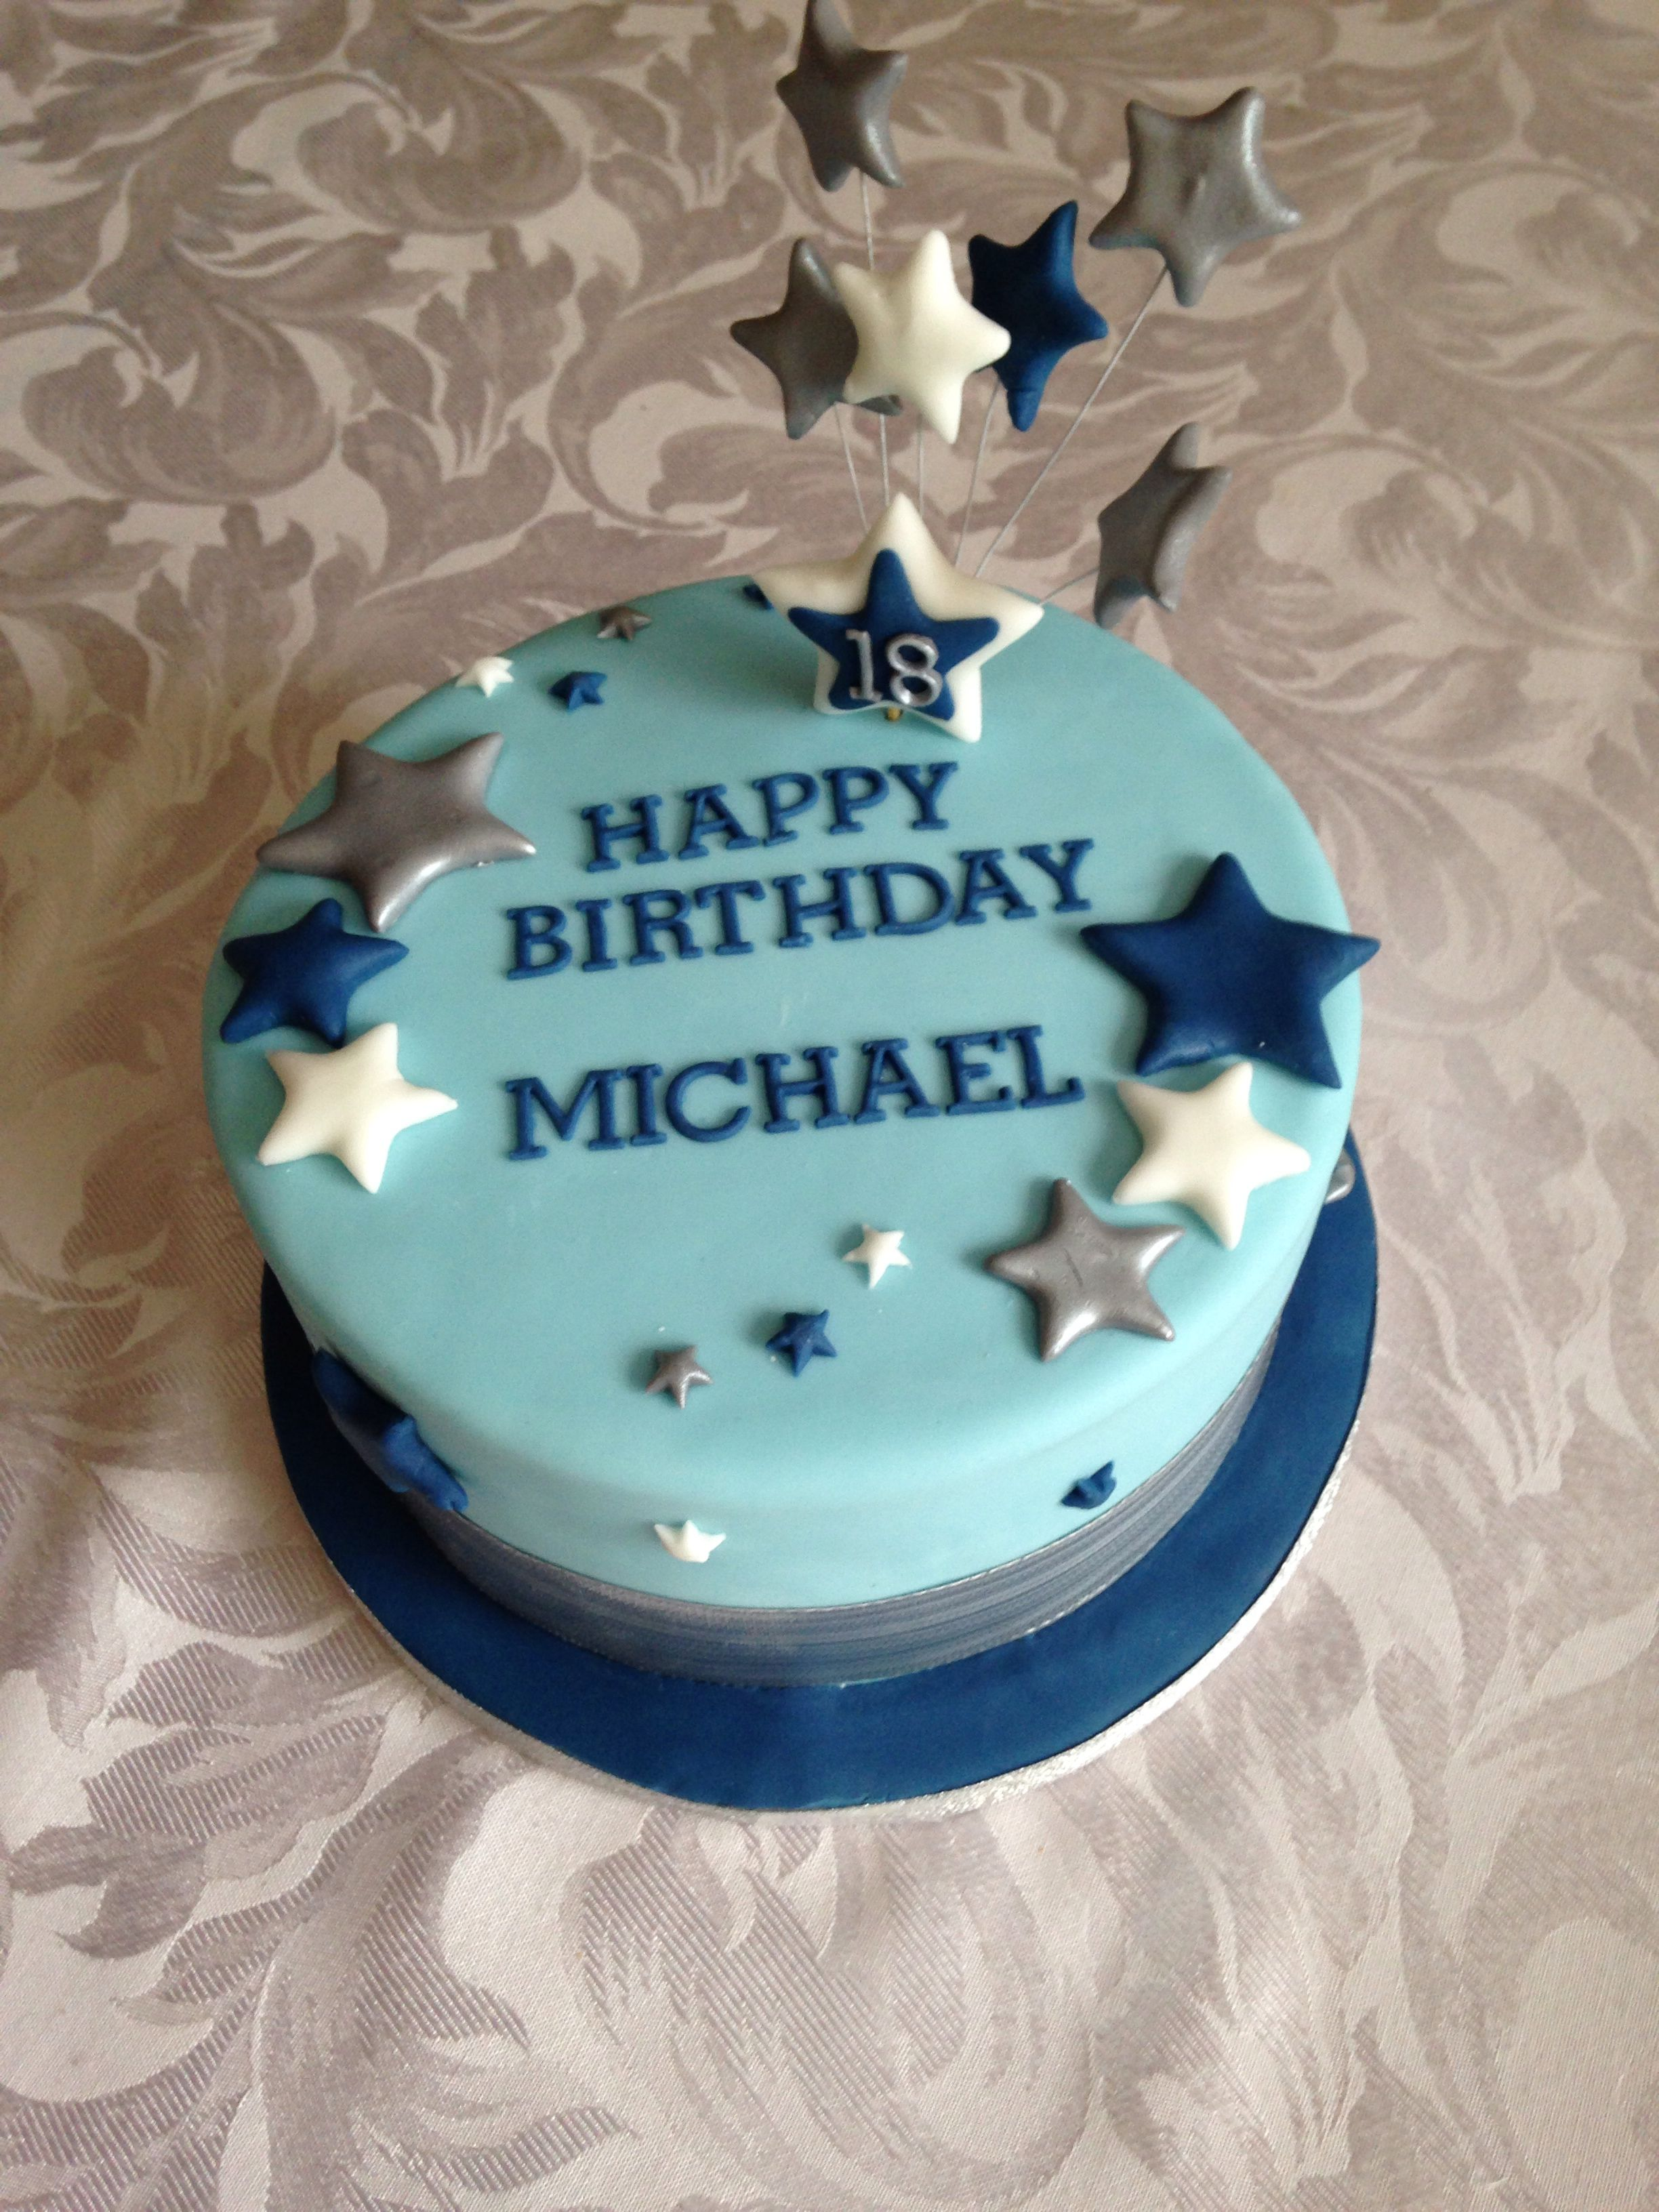 Simple 18th Birthday Cake For A Boy Birthday Cake For Him Simple Birthday Cake Birthday Cakes For Men